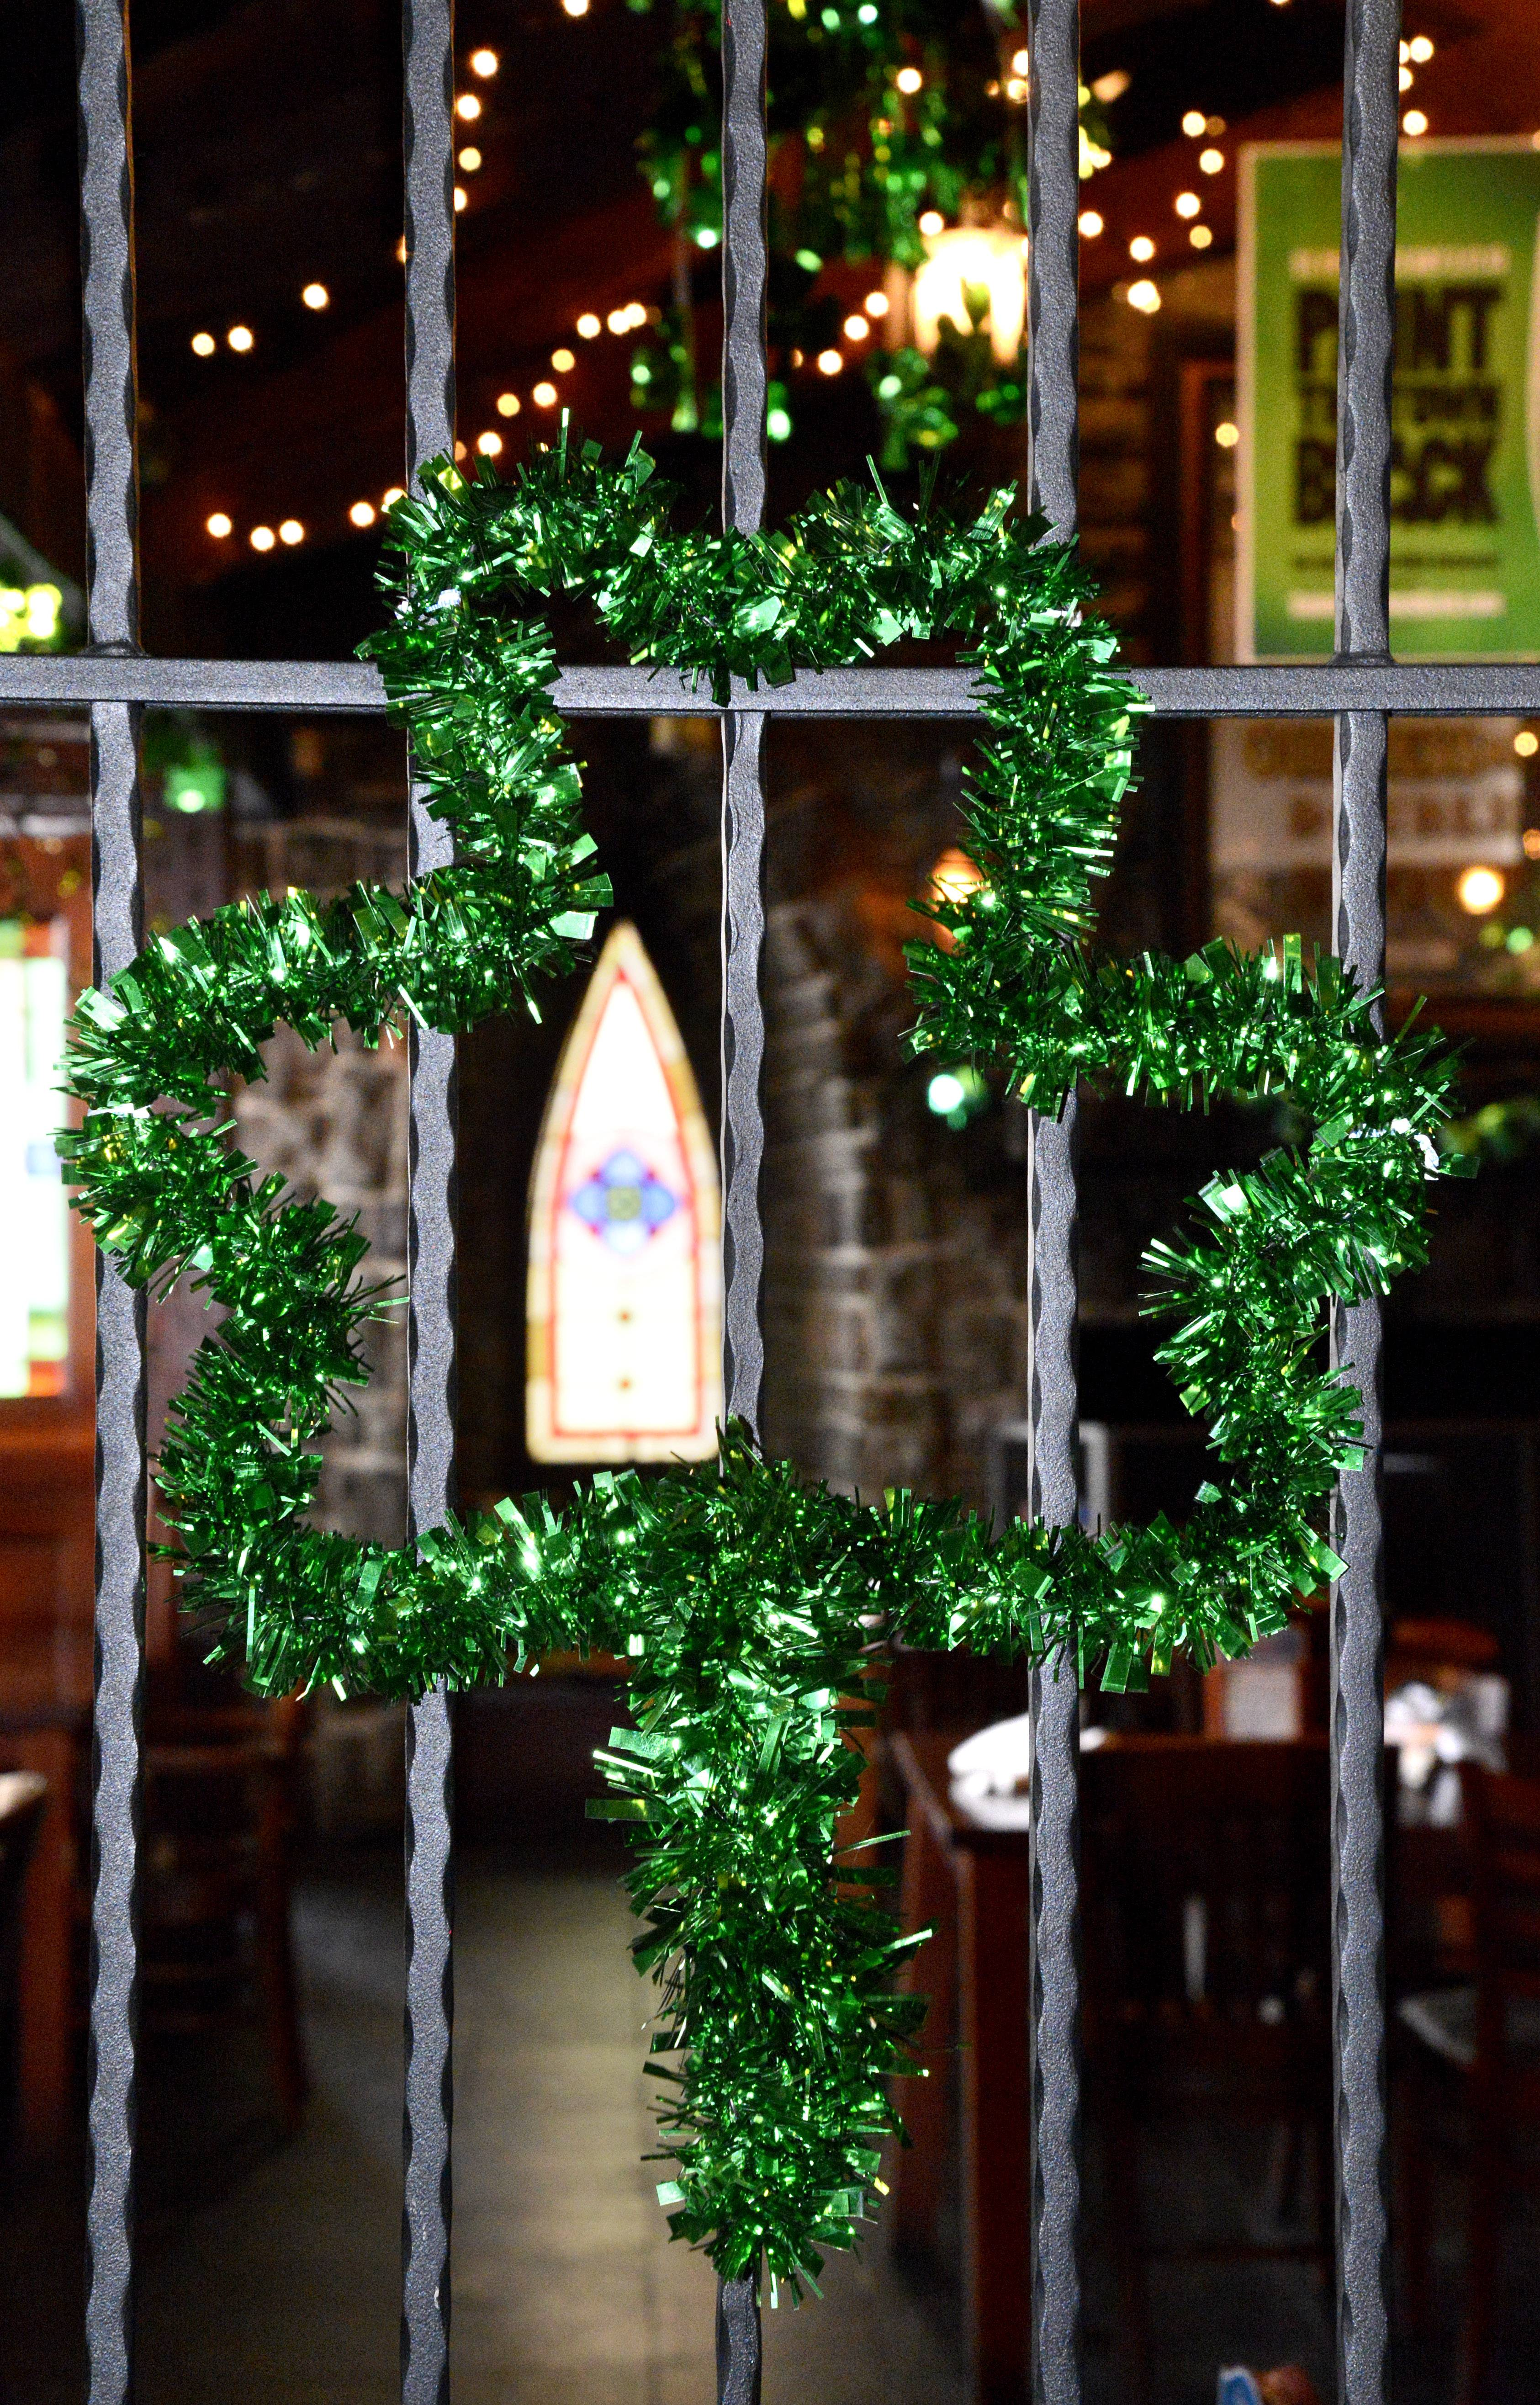 Decorations for St. Patrick's Day are all over at Claddagh Irish Pub at 1702 Commons Drive in Geneva.